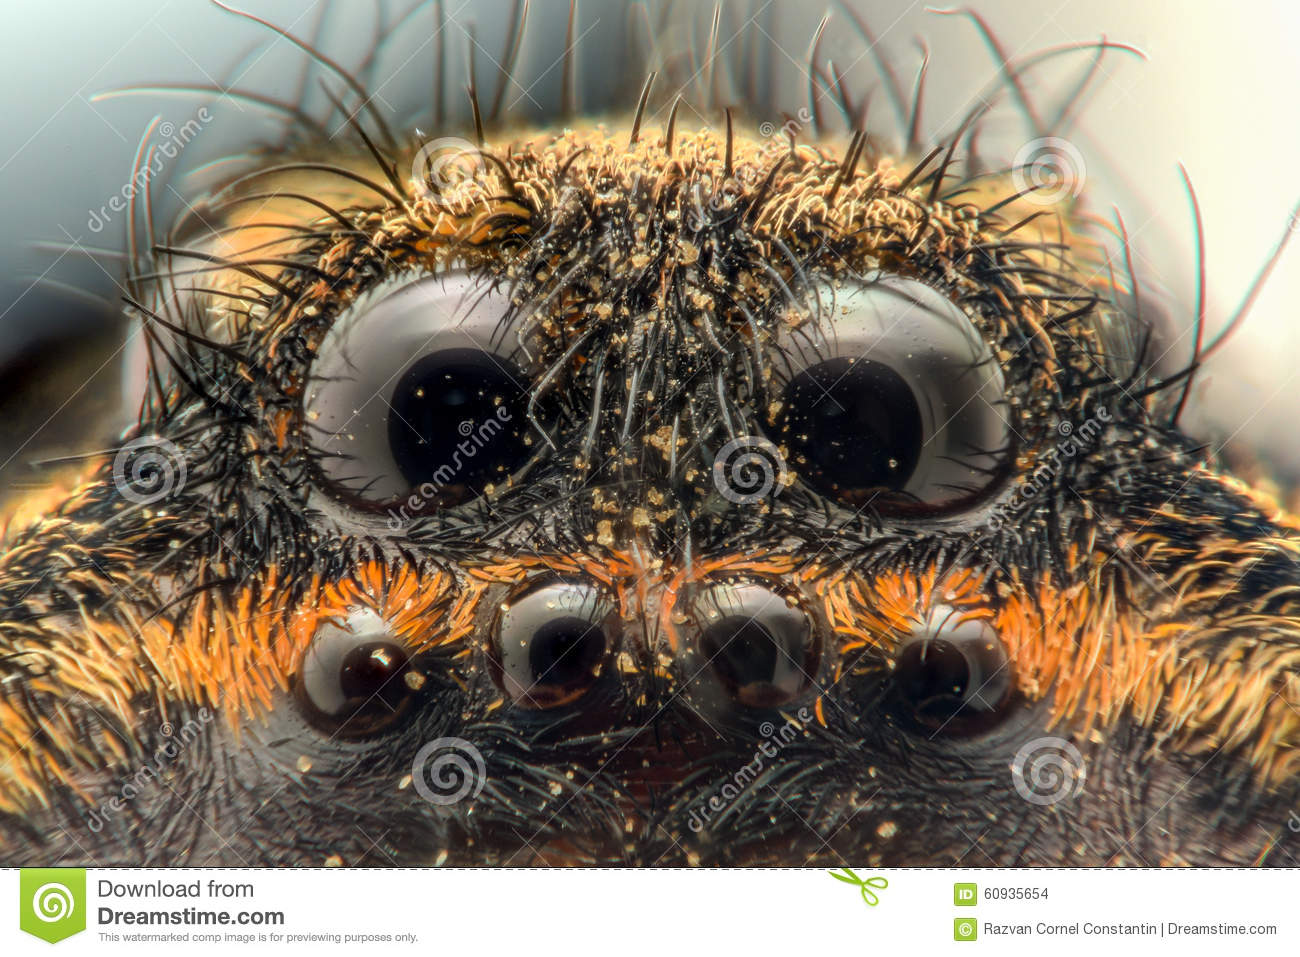 Extreme Magnification Wolf Spider Eyes Stock Photo